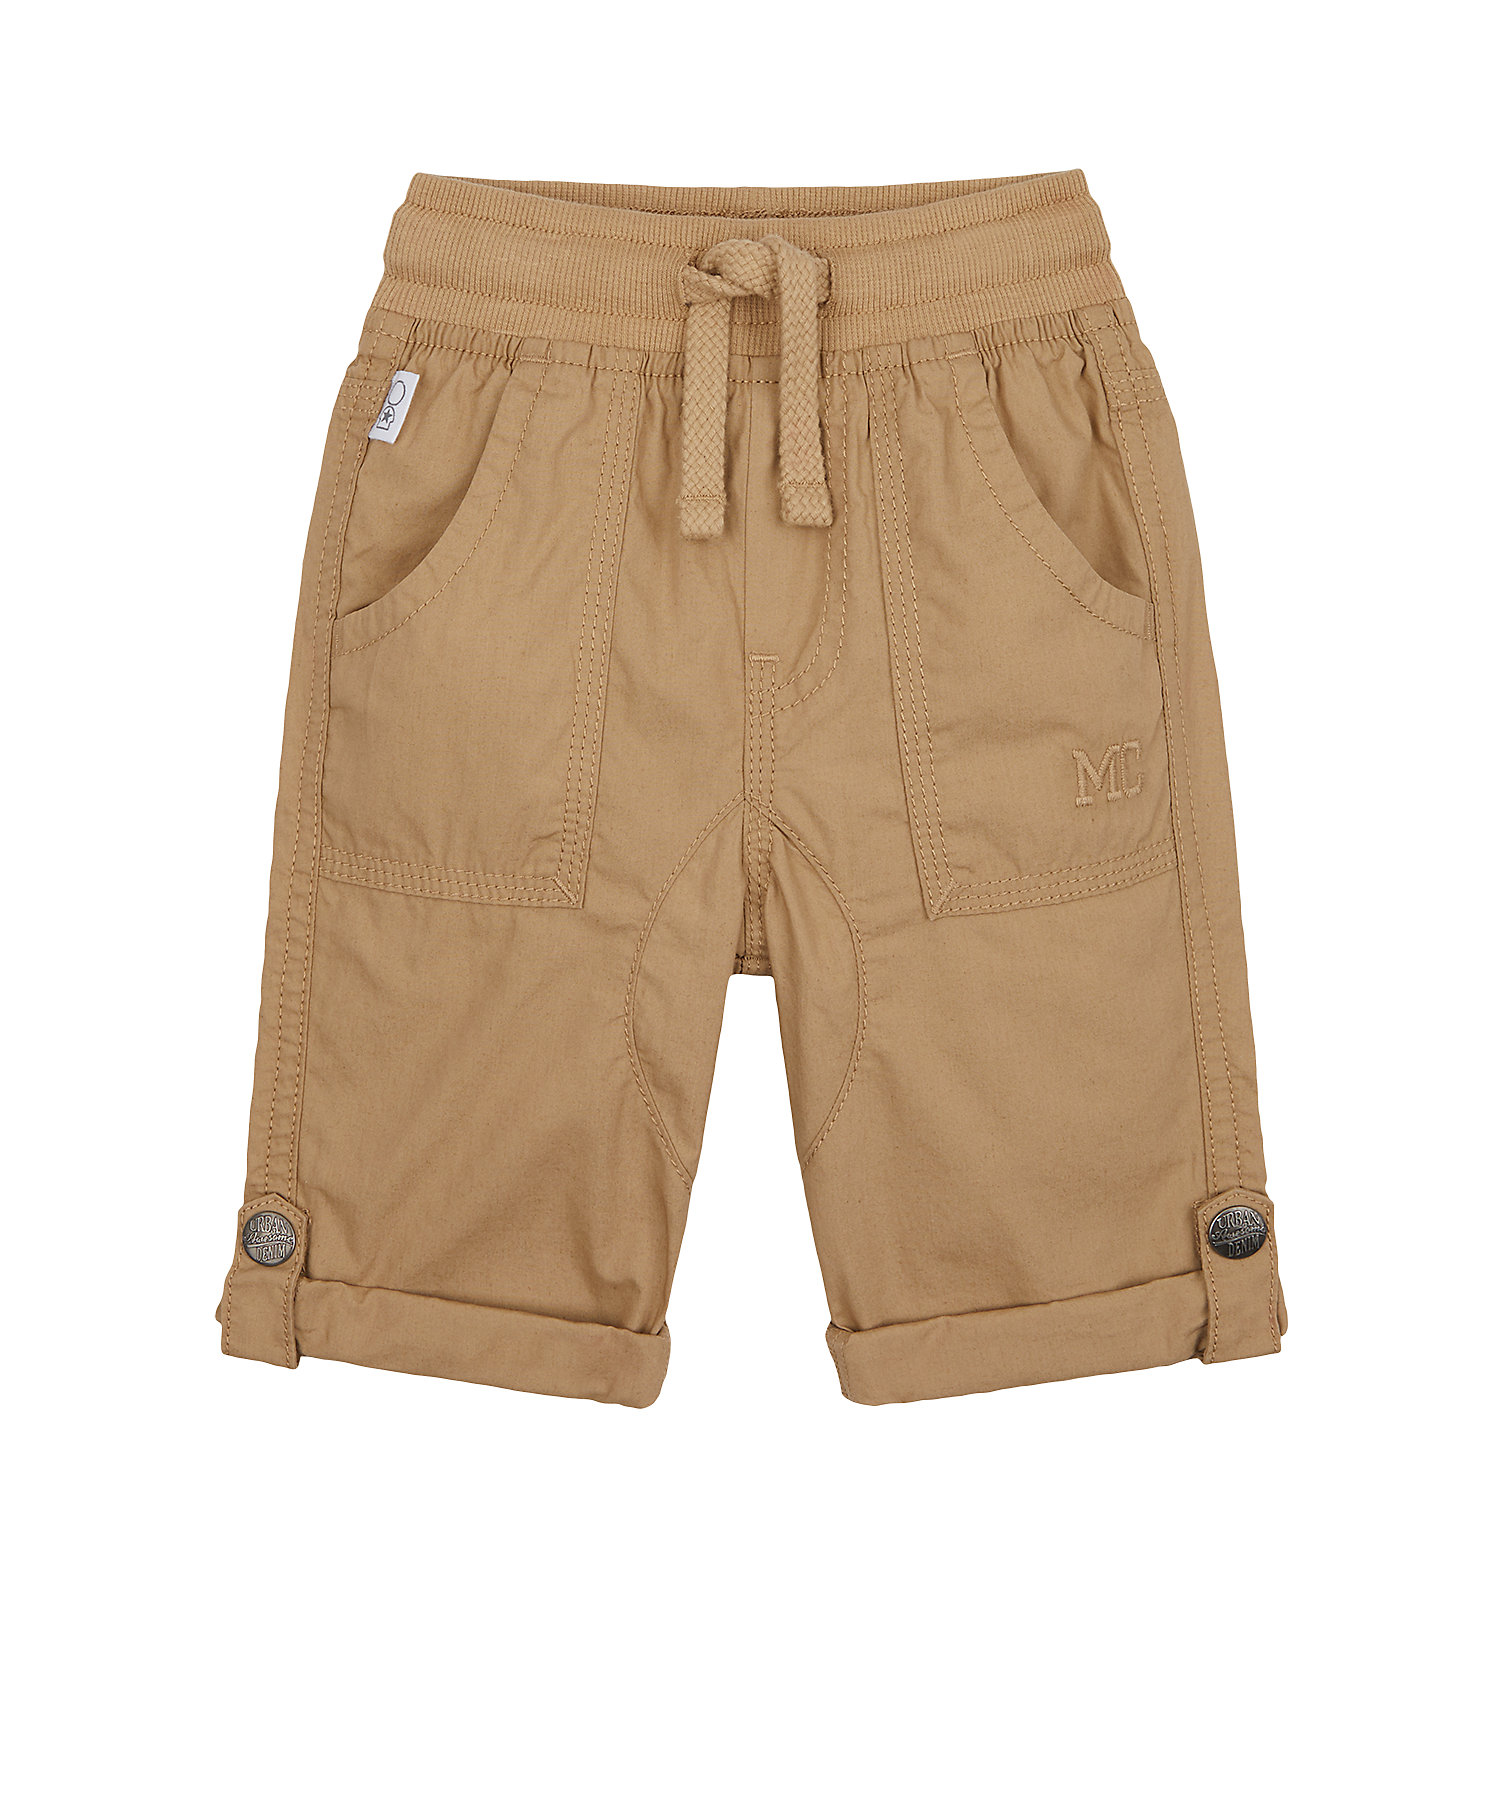 Mothercare | Boys Trousers Roll-Up Hem - Brown